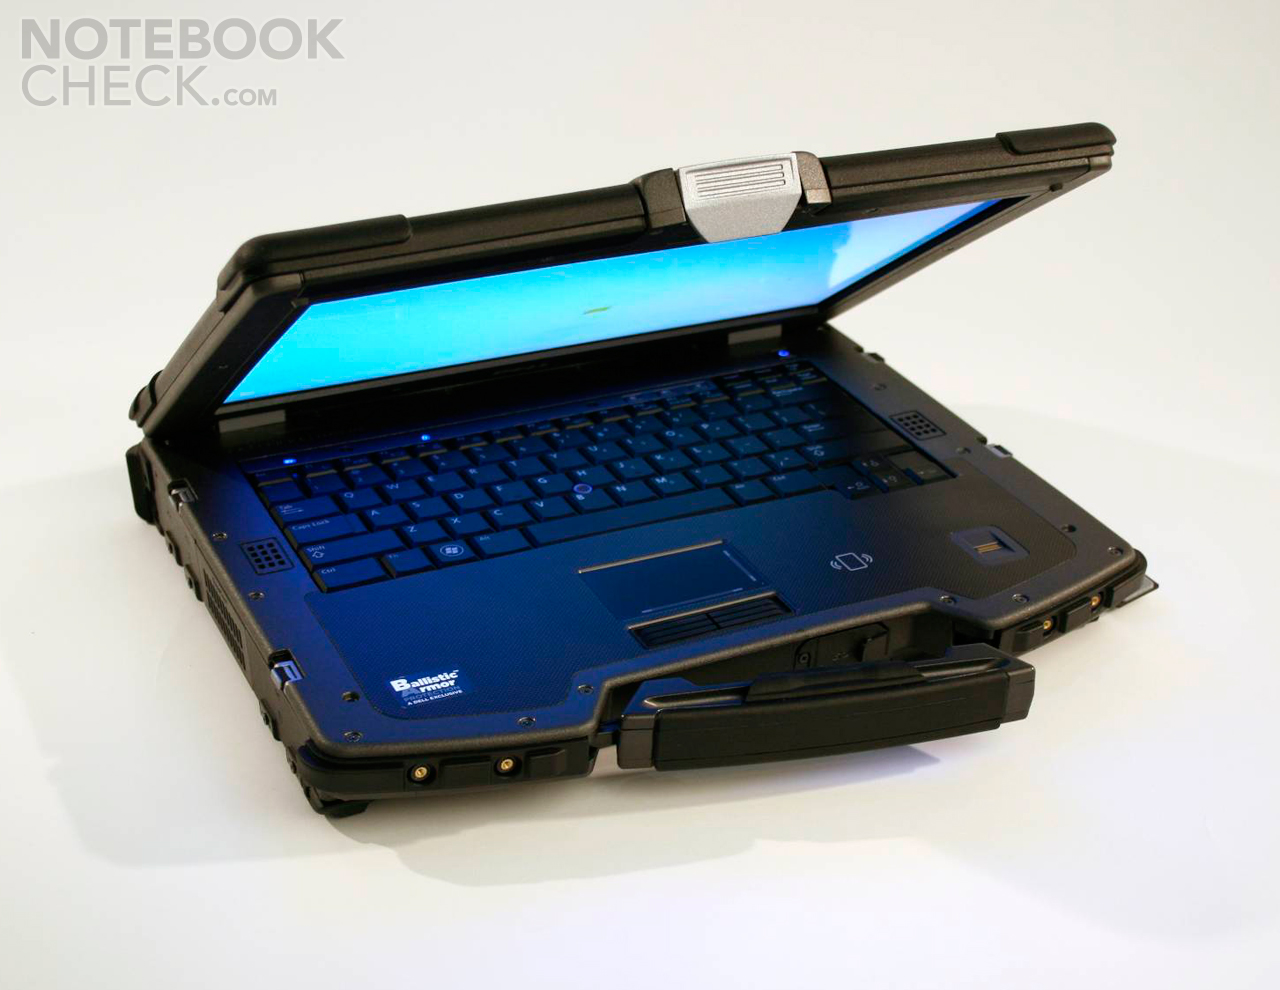 Dell Latitude E6400 XFR Ruggedized Notebook In Review